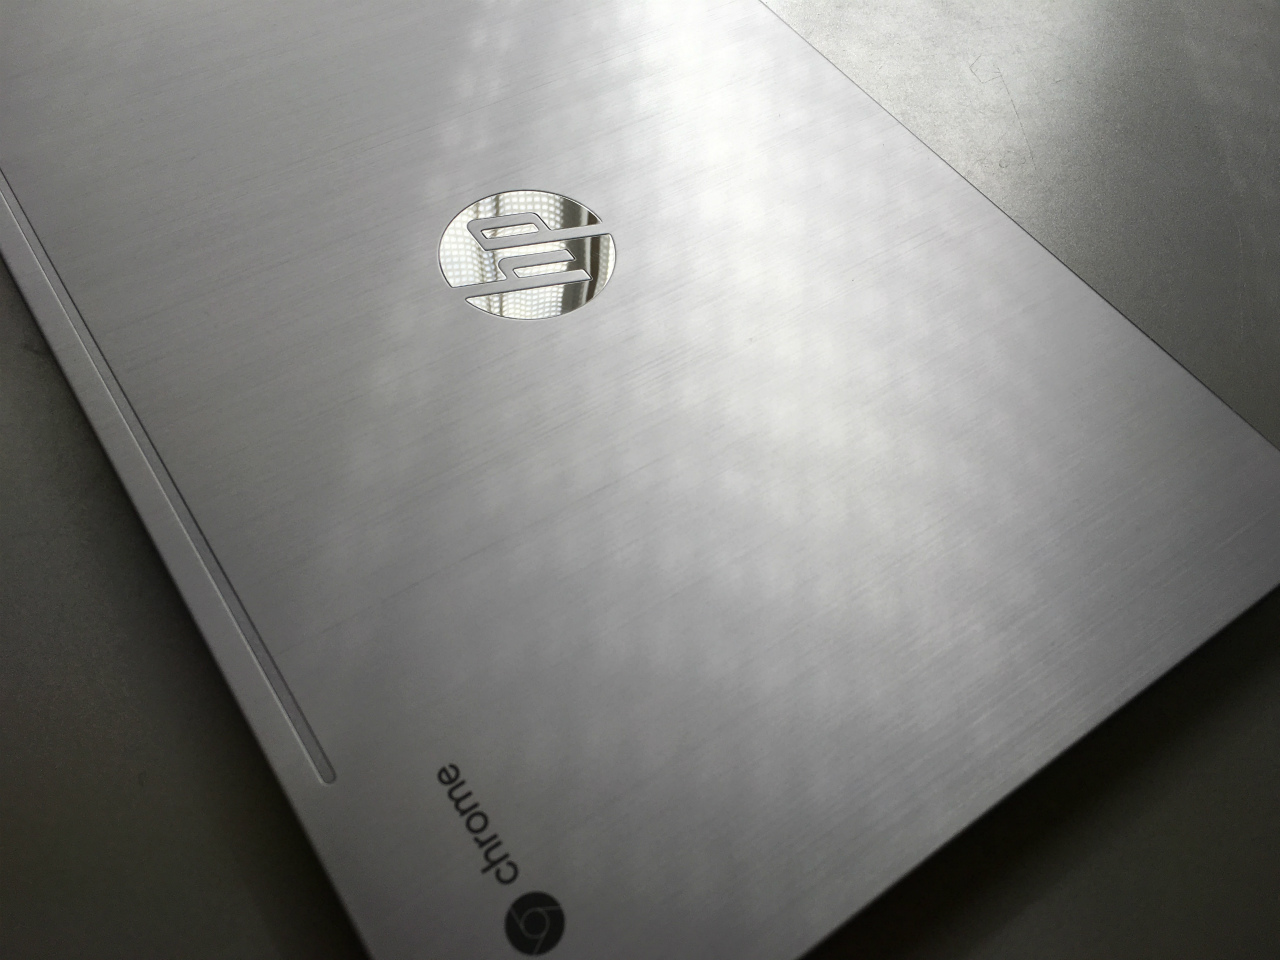 hp-chromebook-13-g1-014